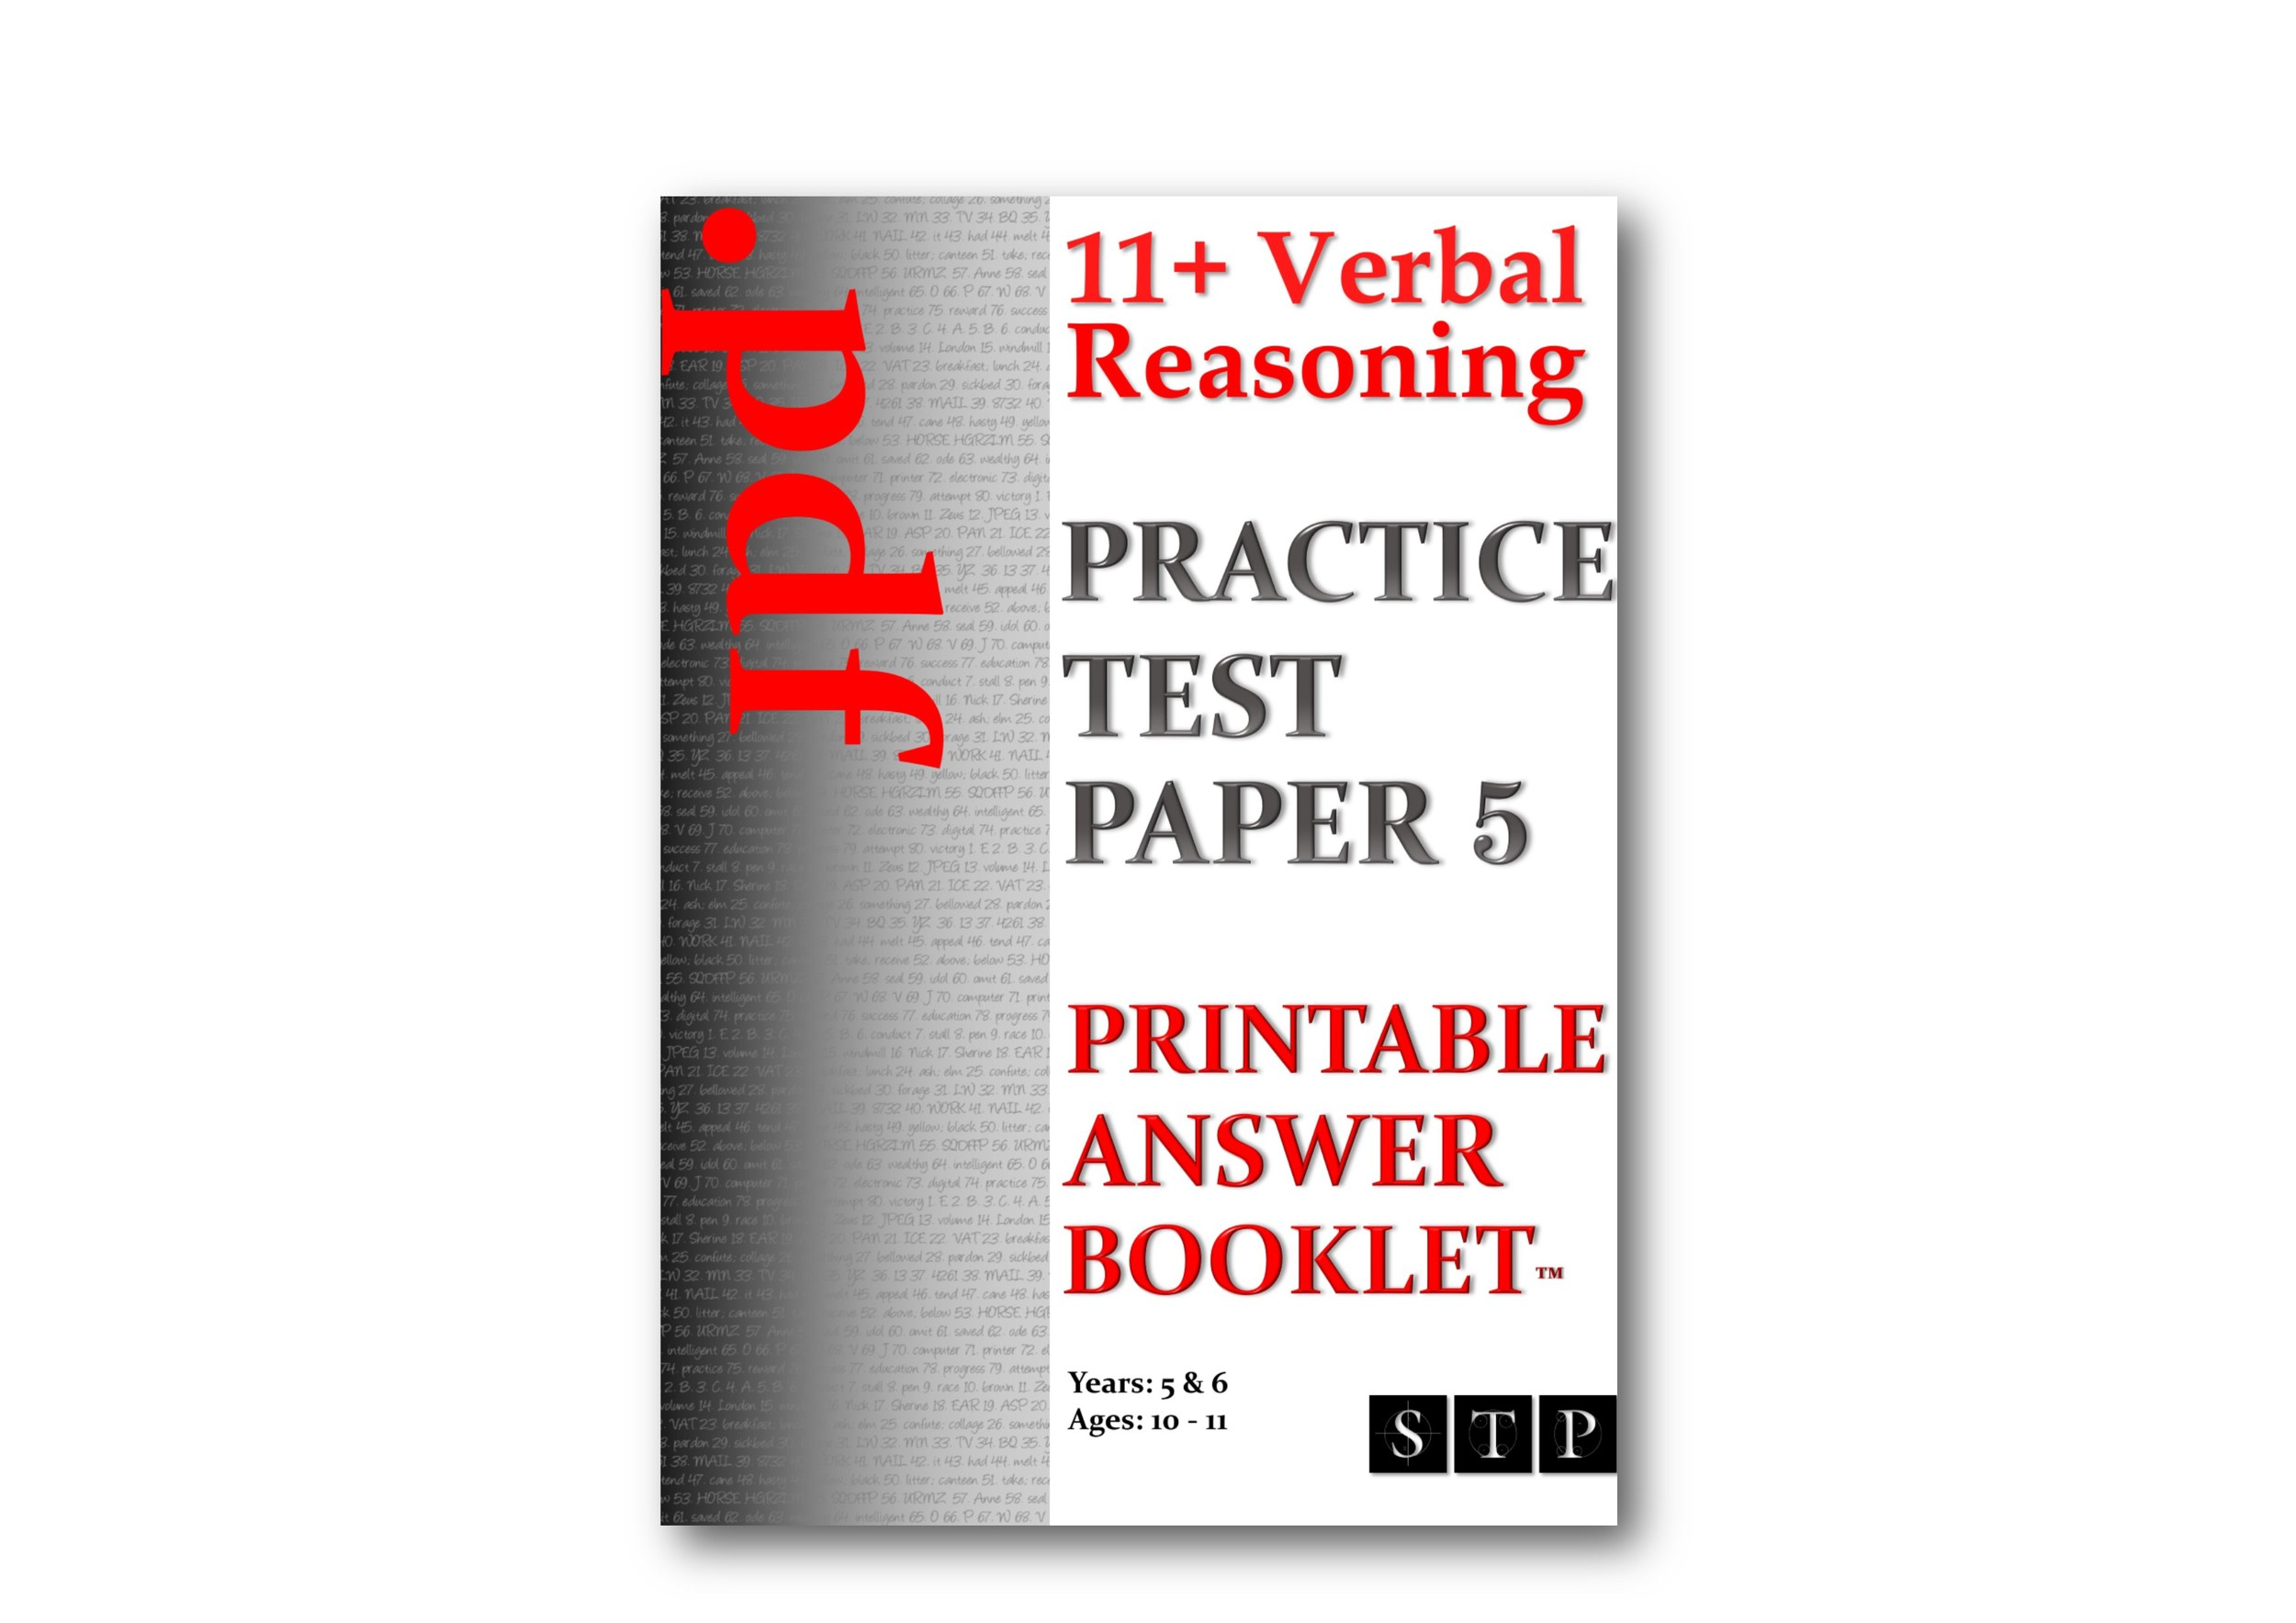 11+ Verbal Reasoning Practice Test Paper 5 (Printable Answer Booklet).jpg